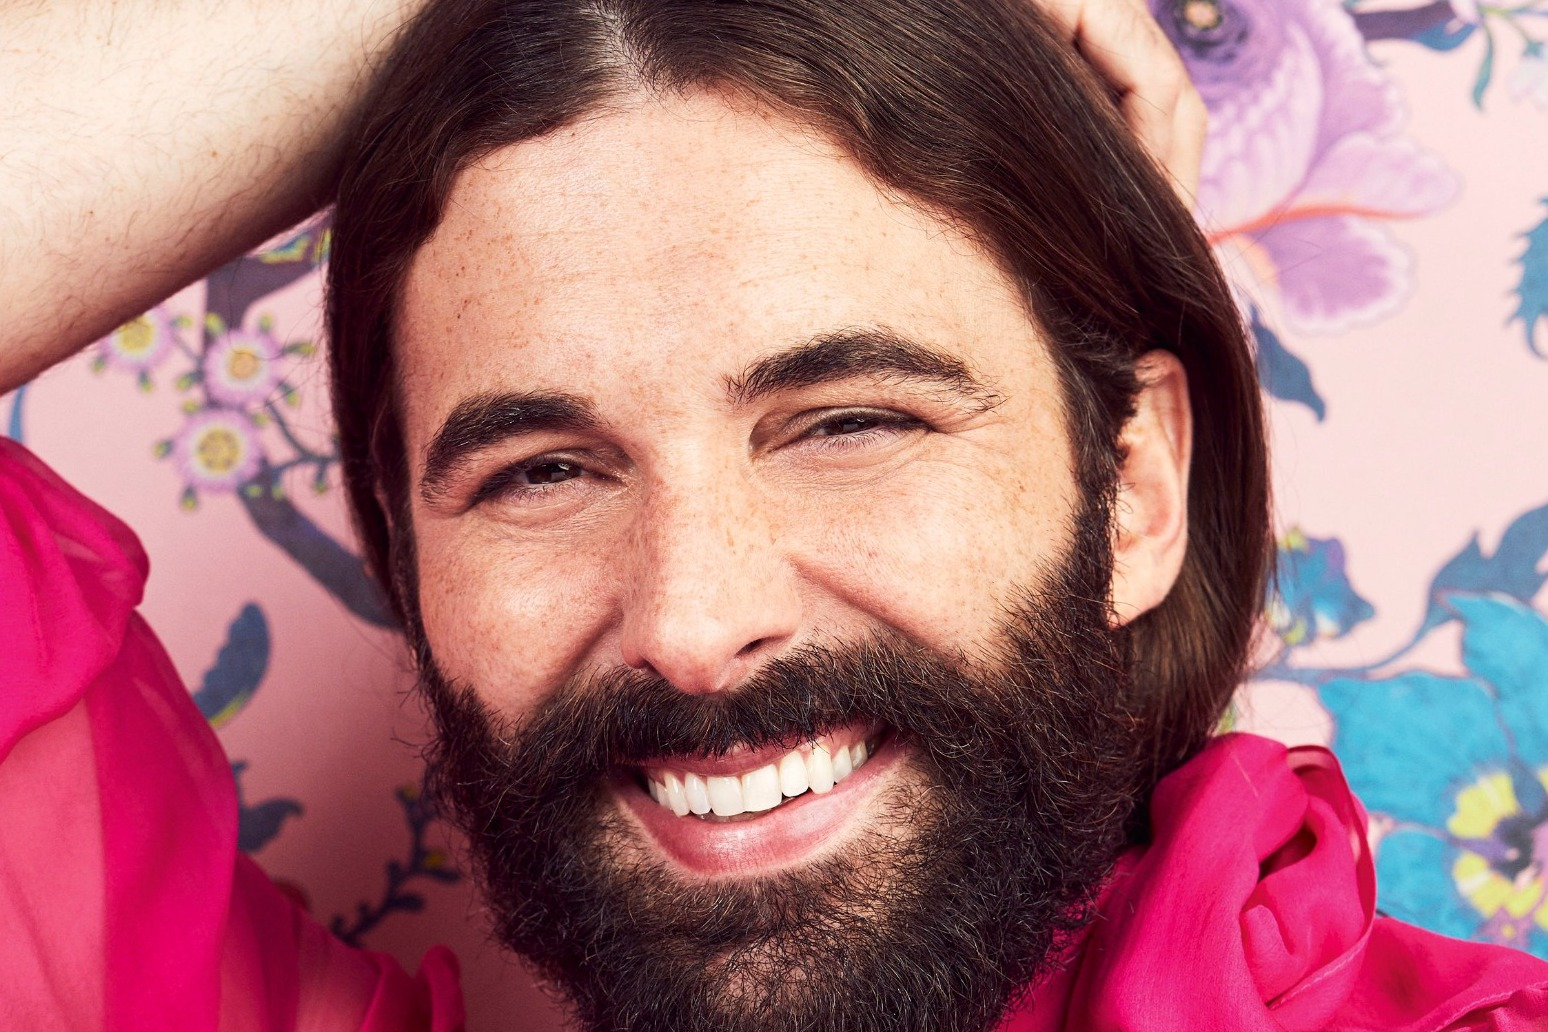 QUEER EYE STAR OPENS UP ABOUT LIVING WITH HIV